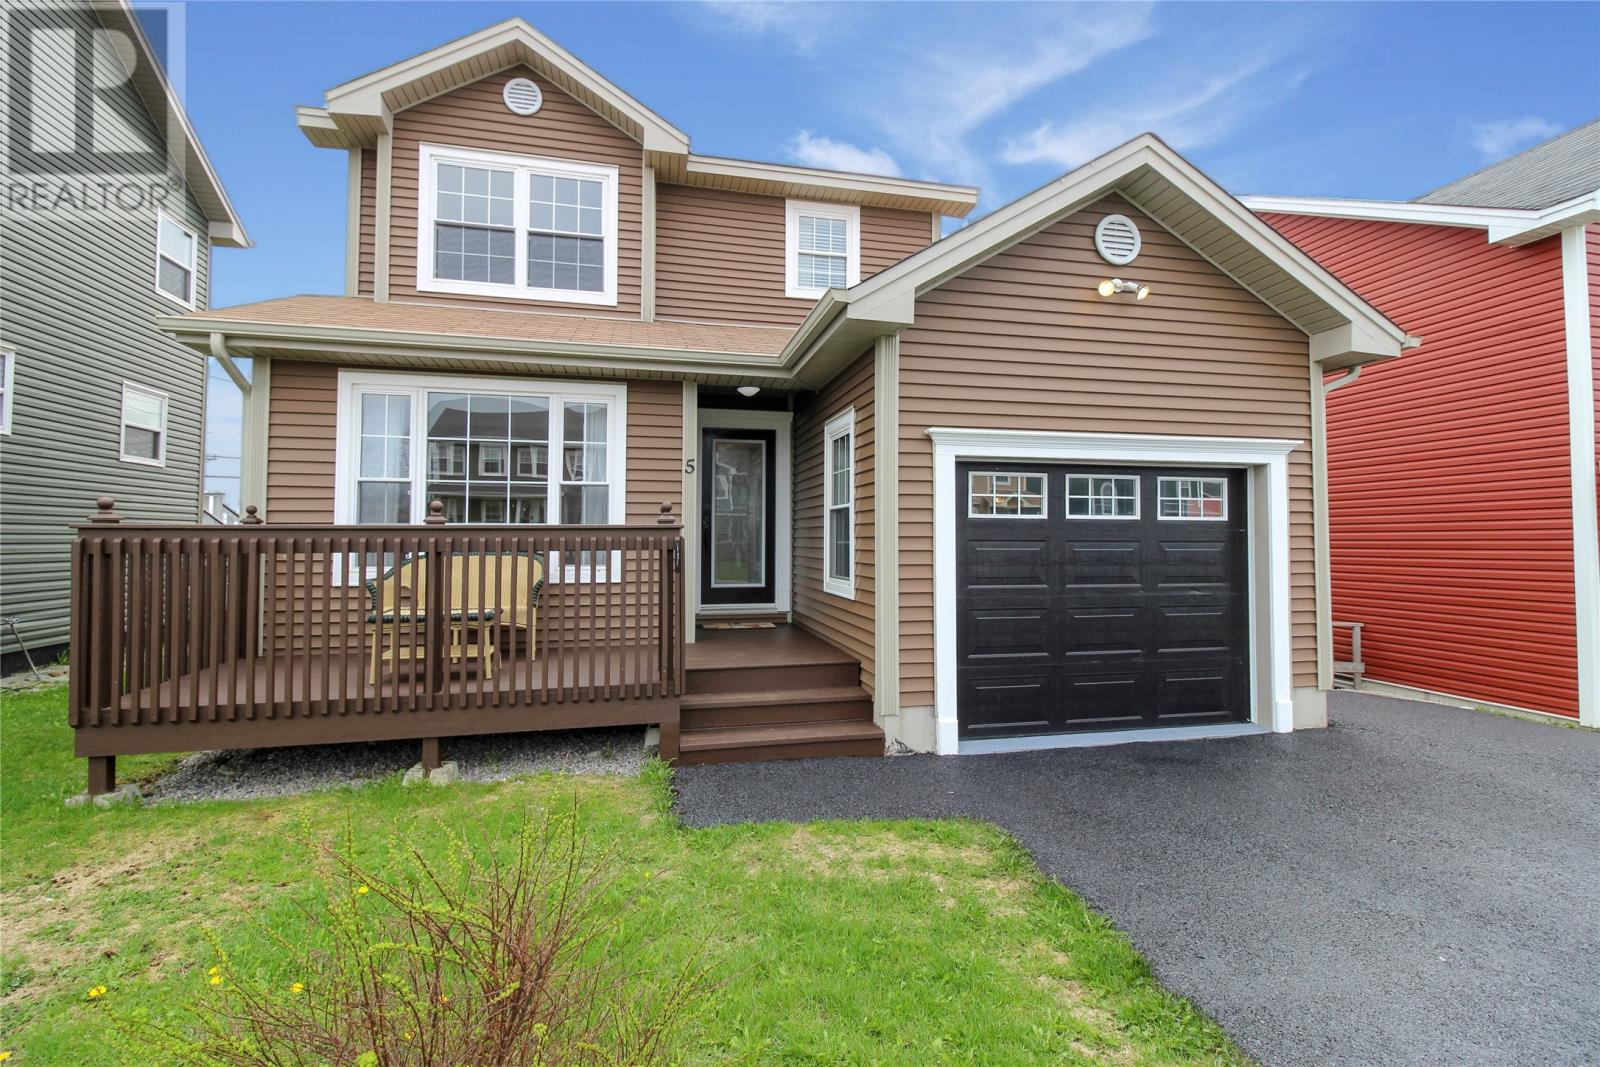 Removed: 5 Lasalle Drive, Mt Pearl,  - Removed on 2019-07-06 11:33:31